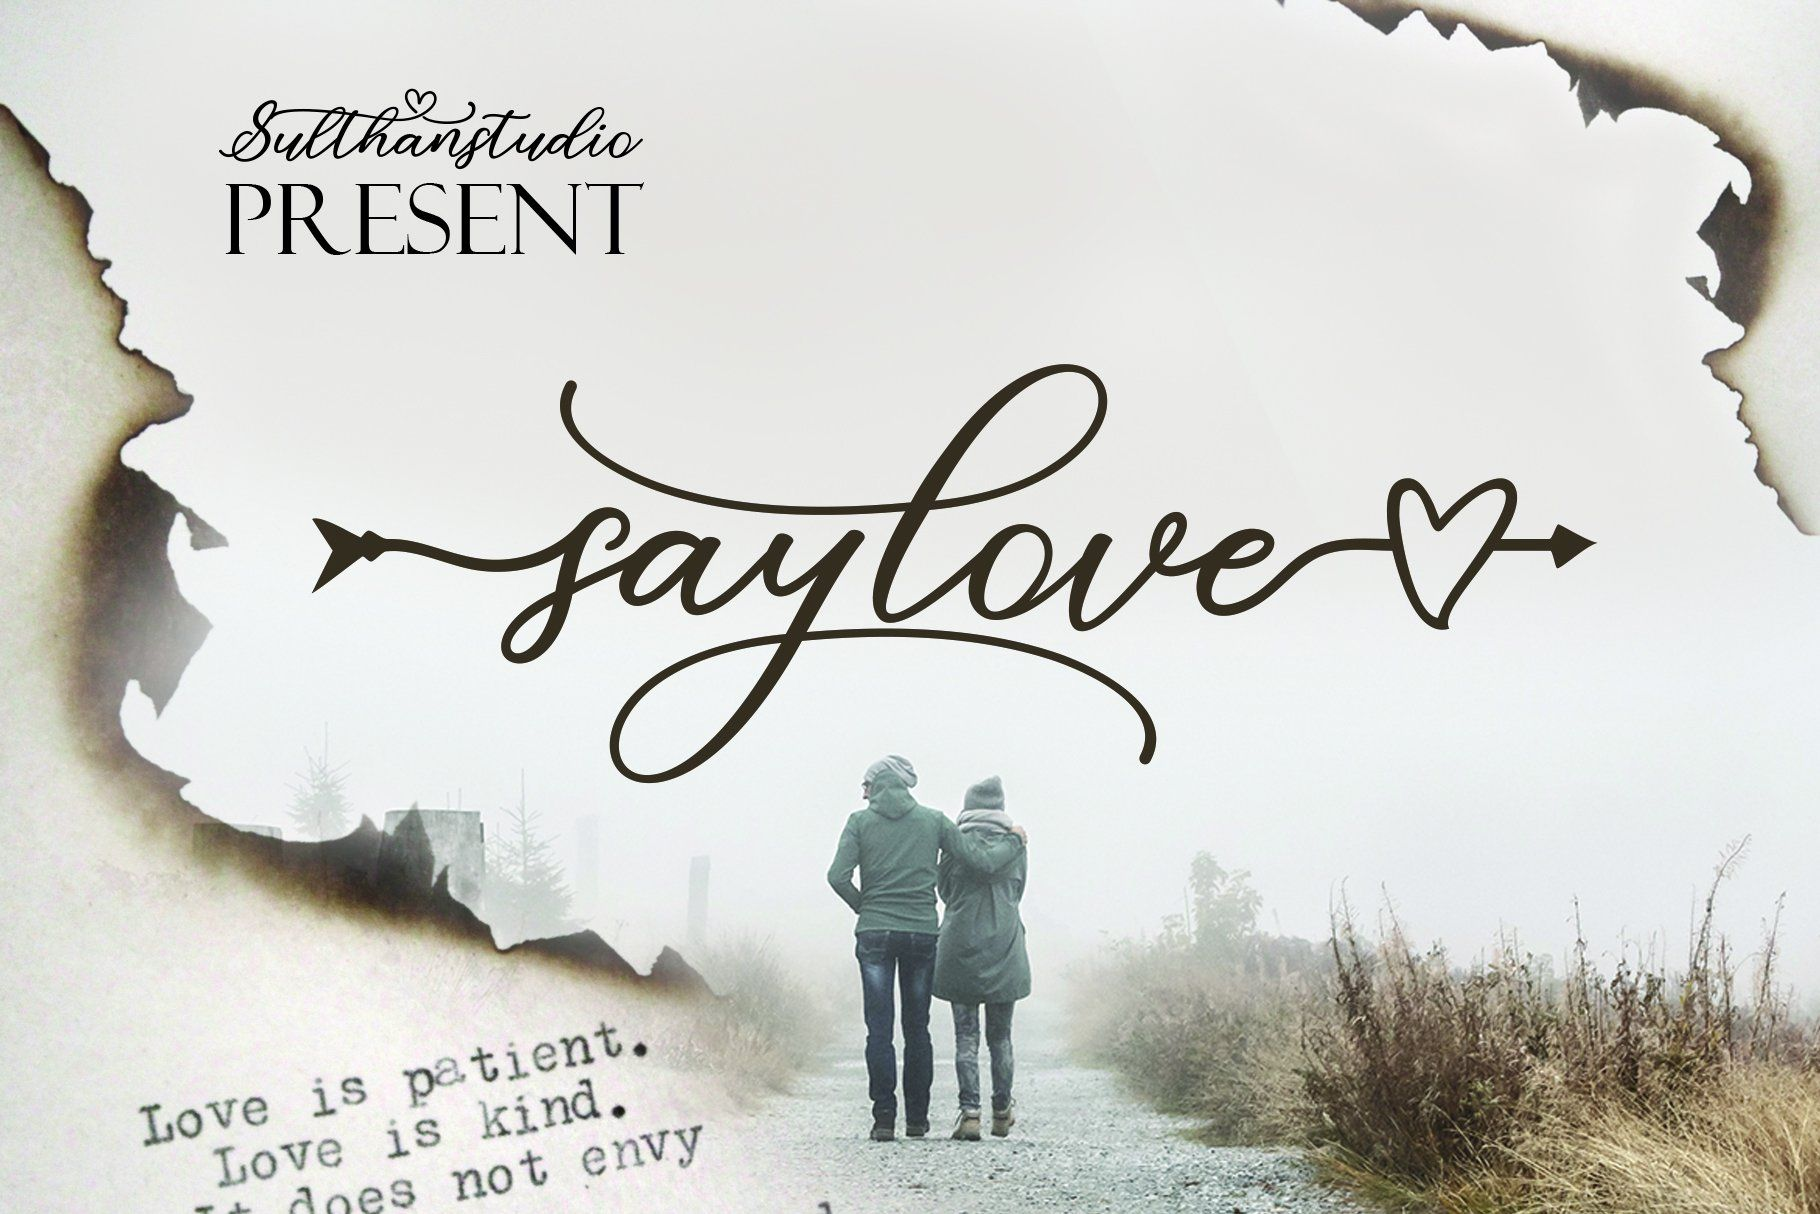 Say love - a new calligraphy font with italics added with a love arrow, this font is still fresh, also luxurious, attractive, sweet, for this font can also be connected with the front and back hearts. Great for greeting cards, branding materials, business cards, quotes, posters, and more! Say love - including many alternative characters. Coded with Unicode PUA, which allows full access to all additional characters without having special design software. Mac users can use Font Book. Windows users